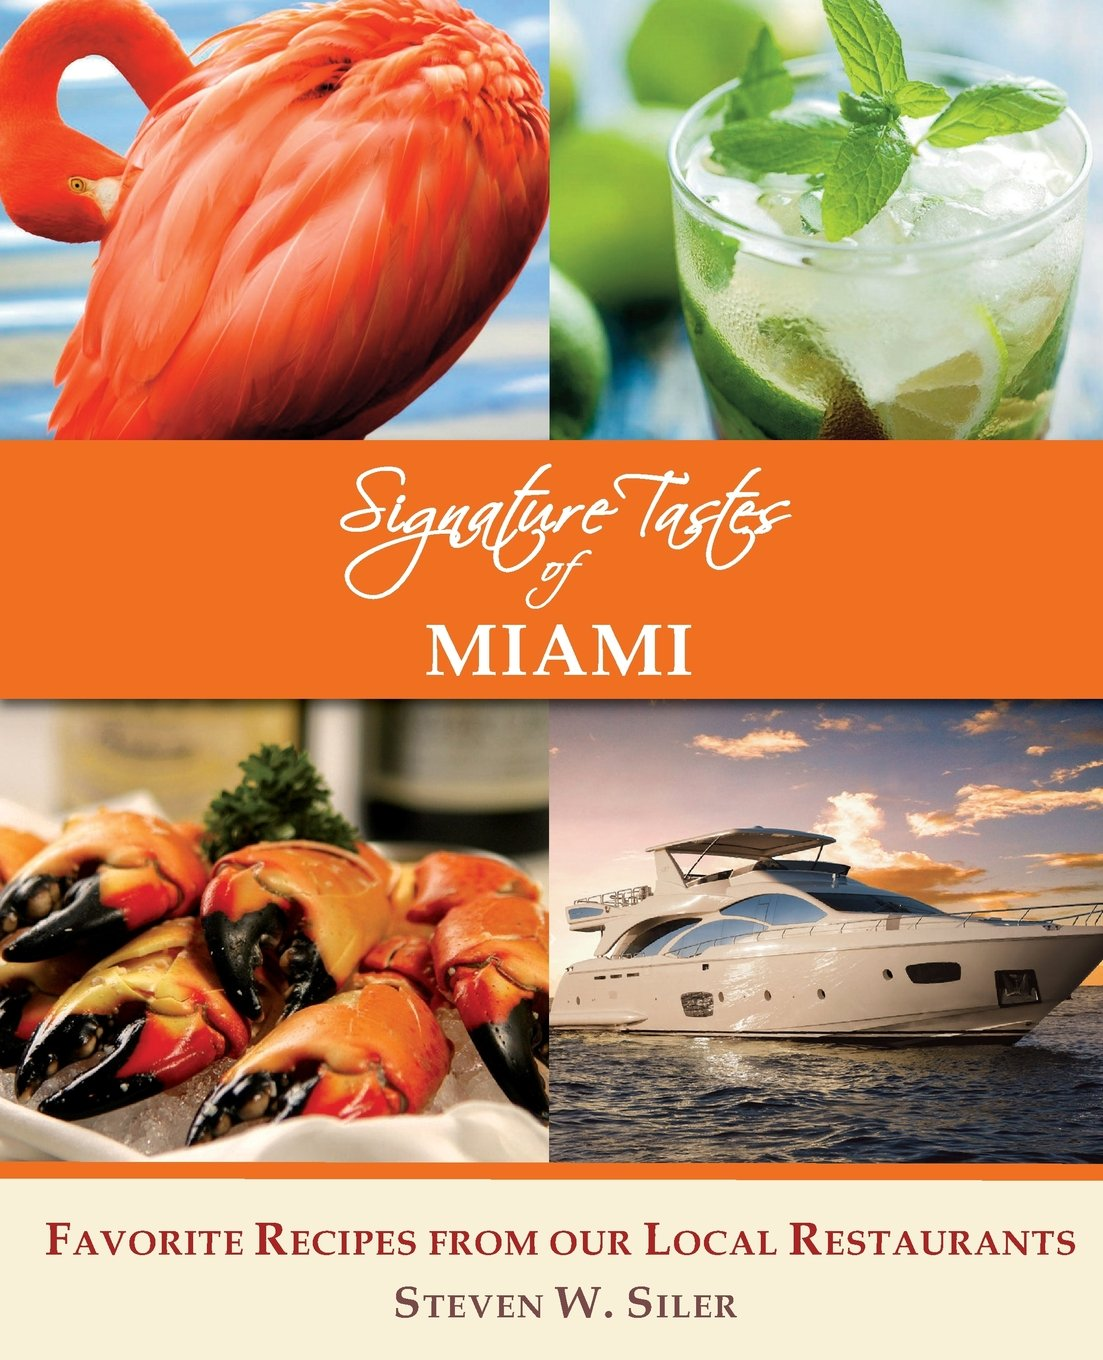 https://www.amazon.com/Signature-Tastes-Miami-Favorite-Ingredients/dp/1505663490/ref=sr_1_2?ie=UTF8&qid=1475184329&sr=8-2&keywords=signature+tastes+of+miami